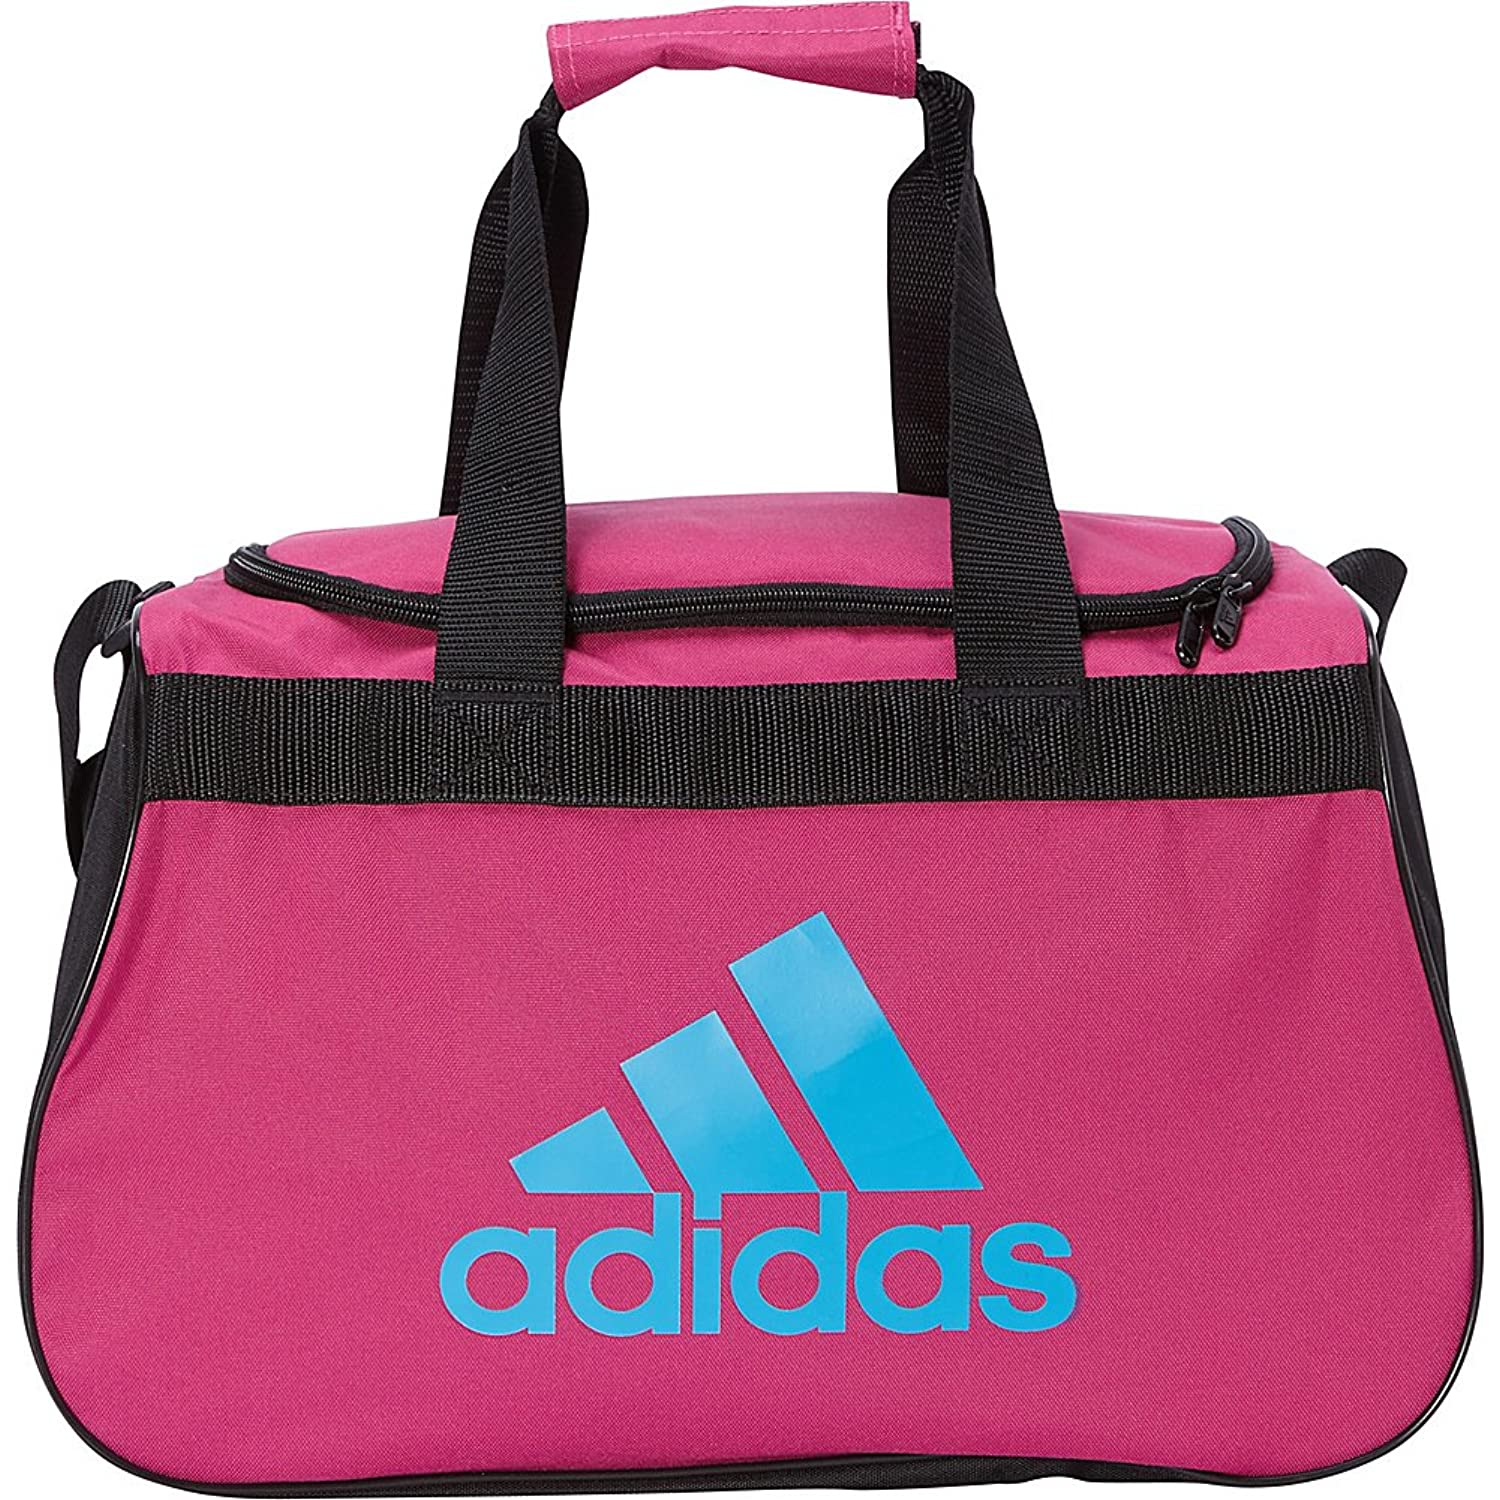 Adidas Diablo Small Duffel Limited Edition Colors Exclusive